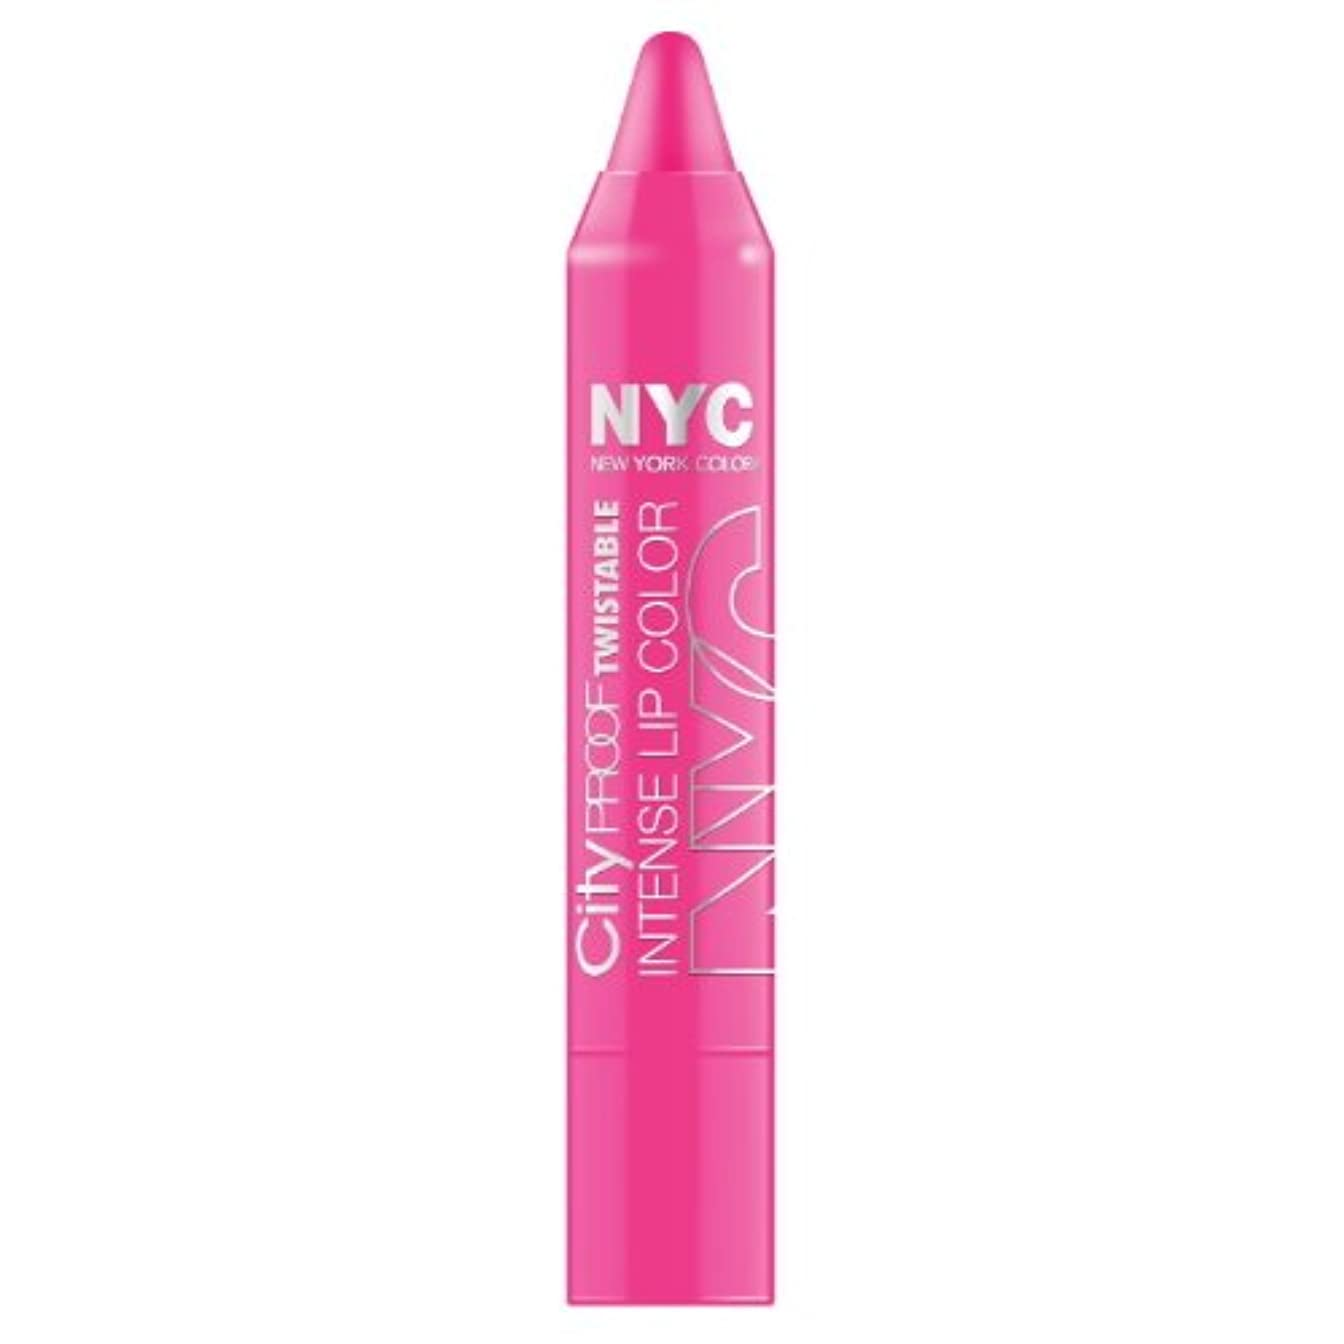 NYC City Proof Twistable Intense Lip Color - Fulton St Fuchsia (並行輸入品)